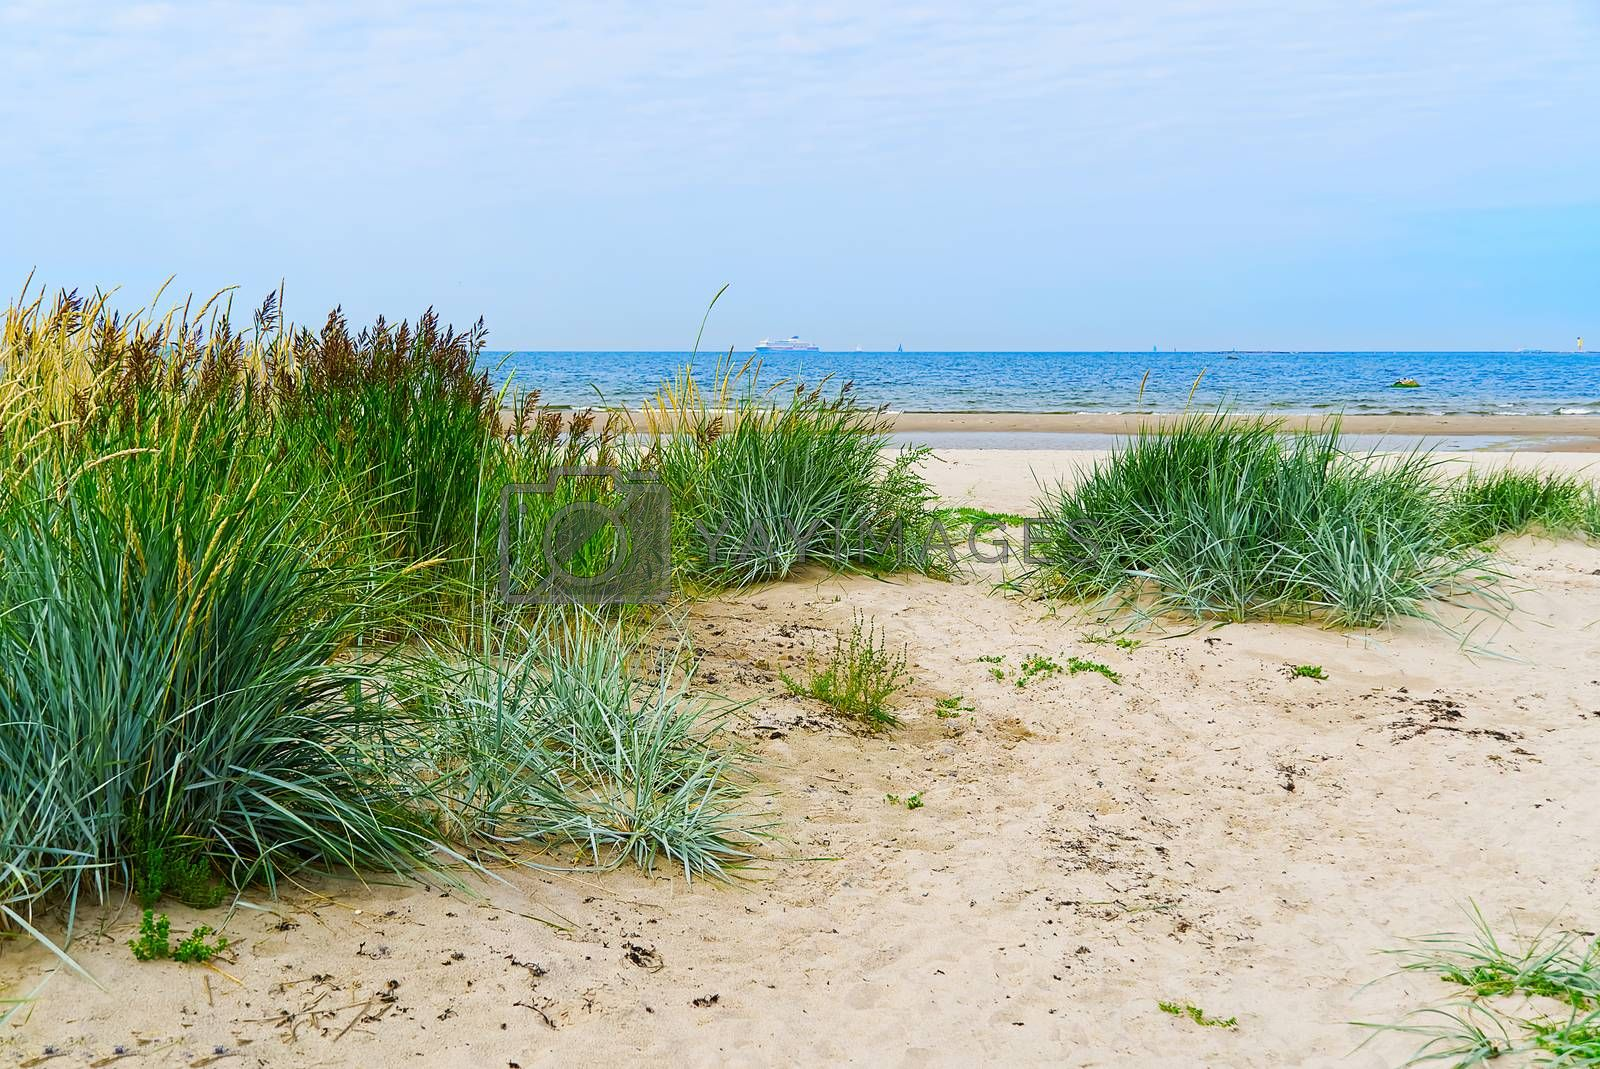 Royalty free image of Green reed lots of sand and blue sea. Beautiful sandy beach at Baltic Sea in Aegna island, Estonia.Grass straw on the beach in sunset. by PhotoTime